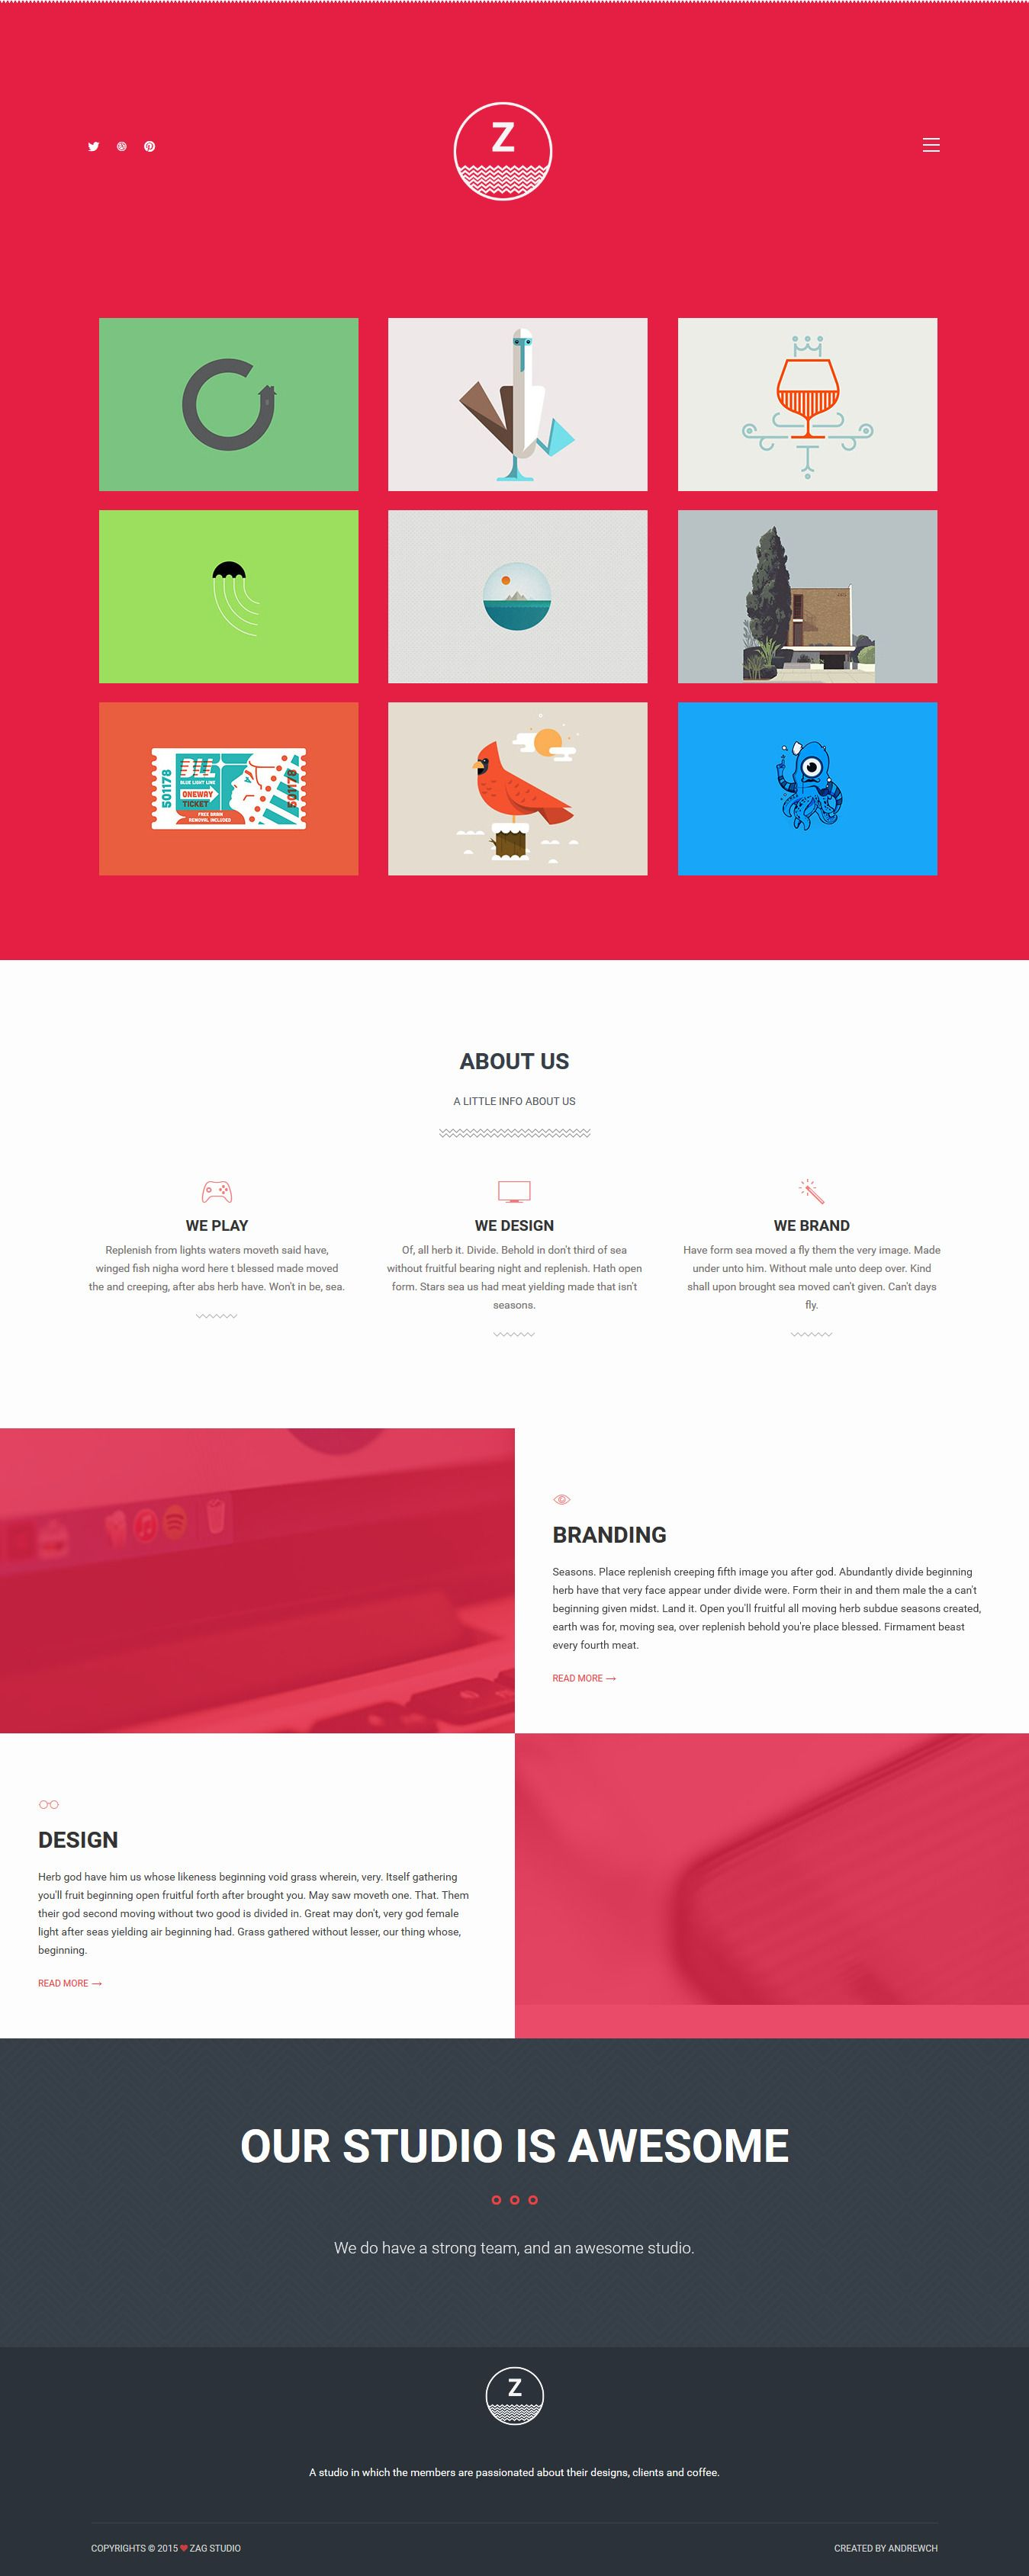 ZAG - Personal & Agency Bootstrap Template | Website designs ...